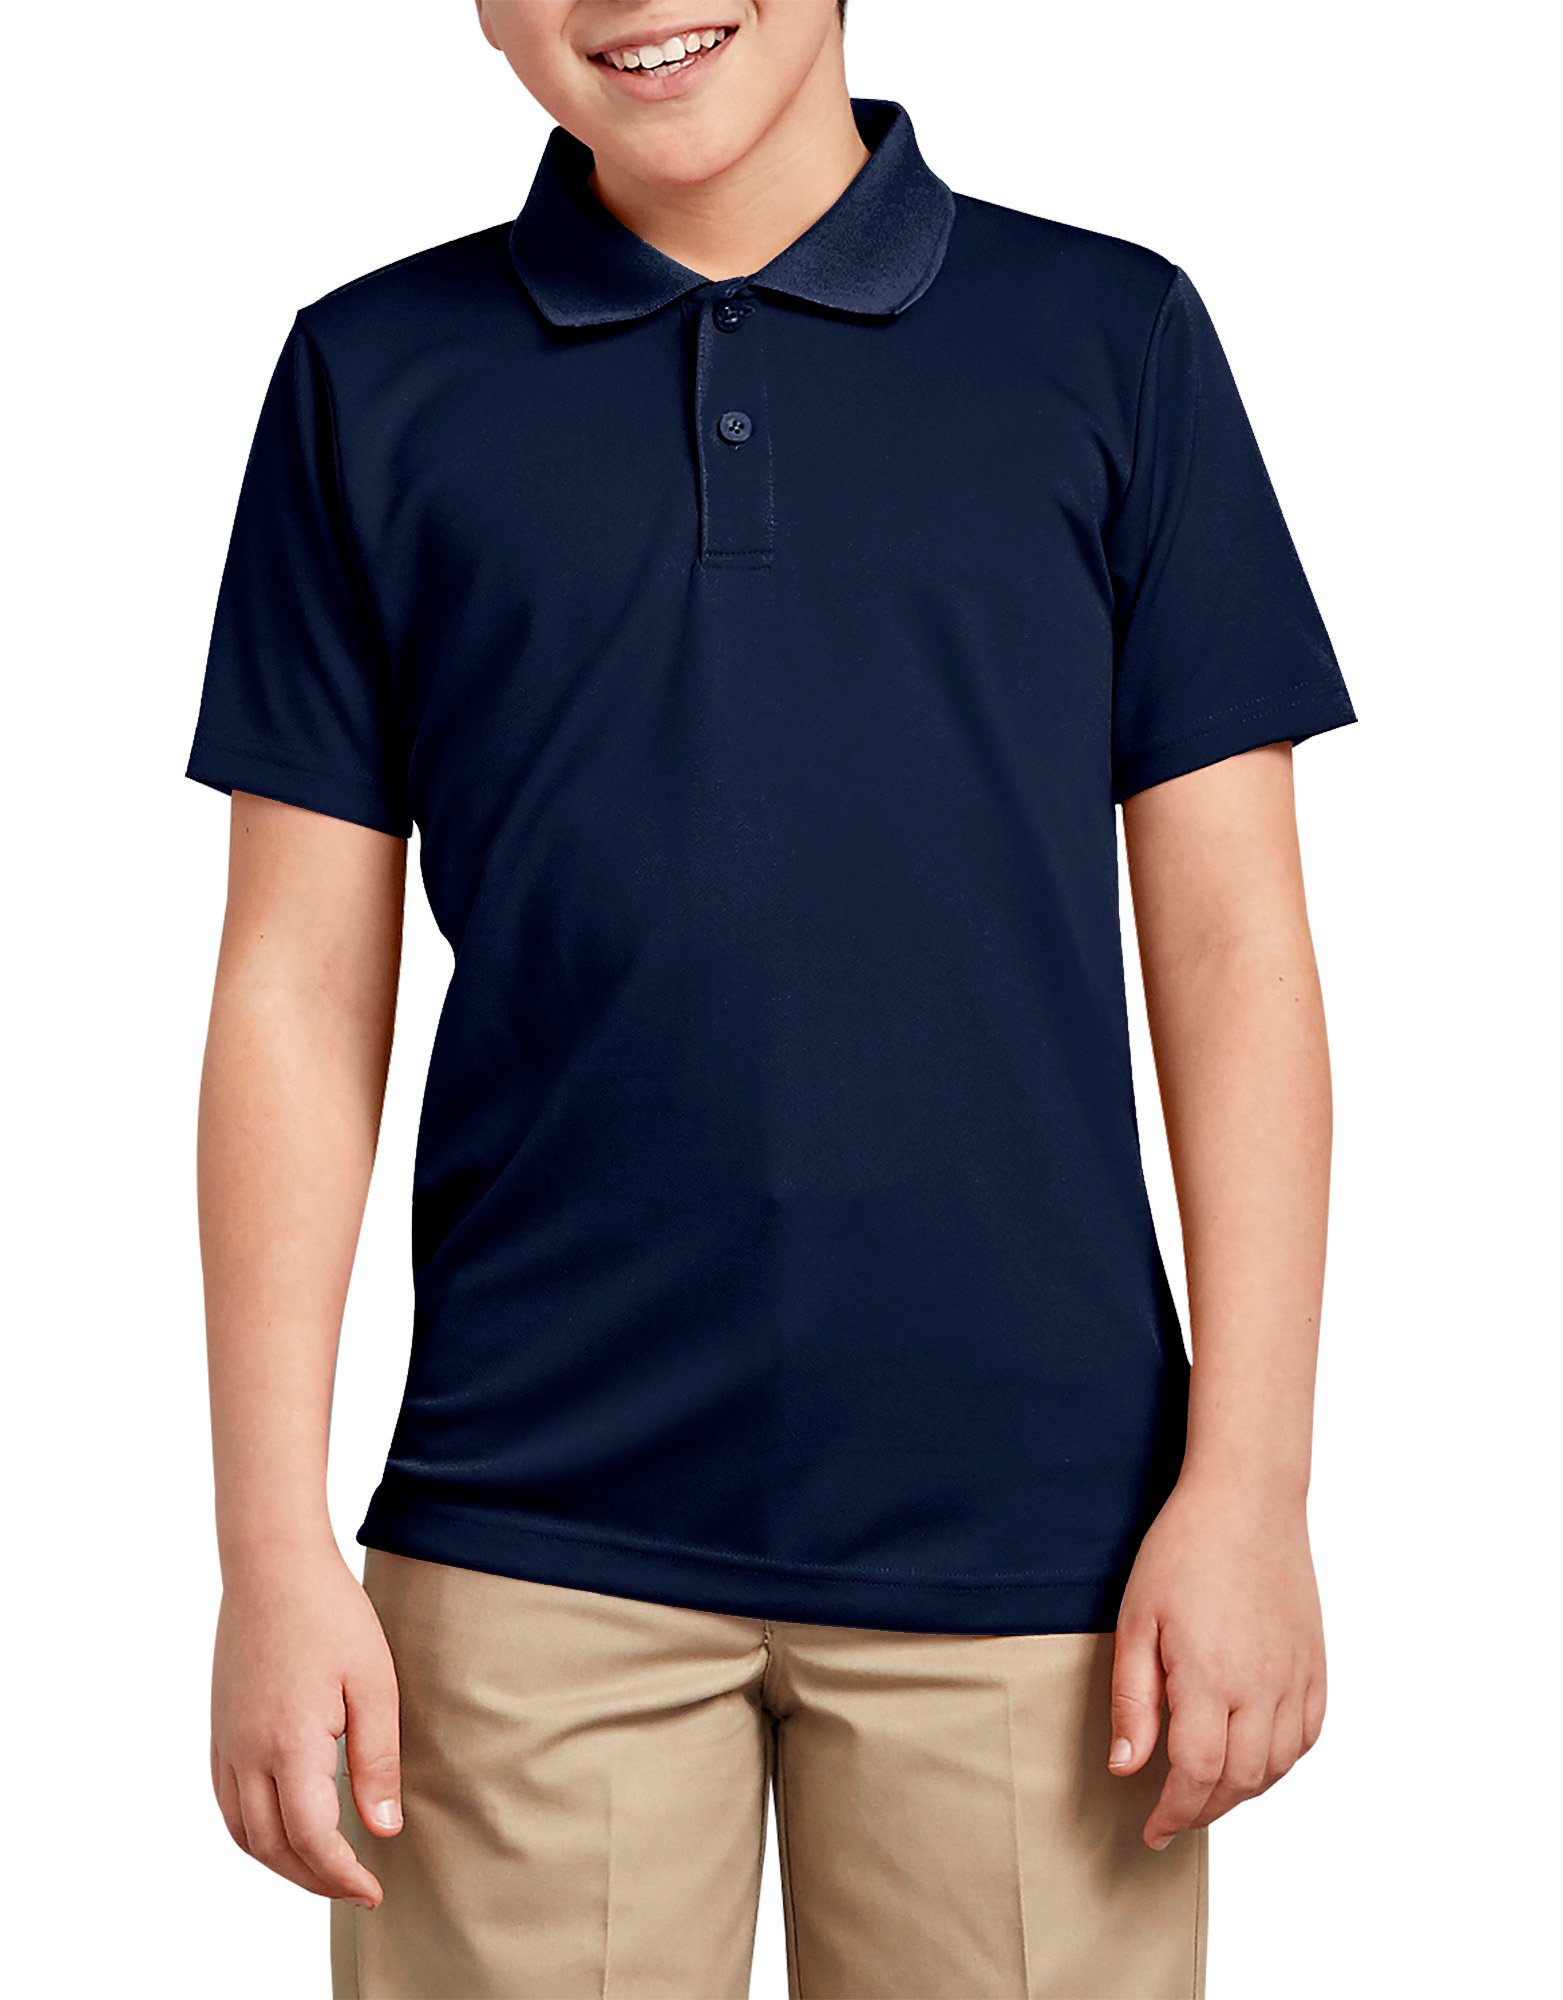 Boys' Performance Polo Shirt, 8-20 - Night Navy (IN2)